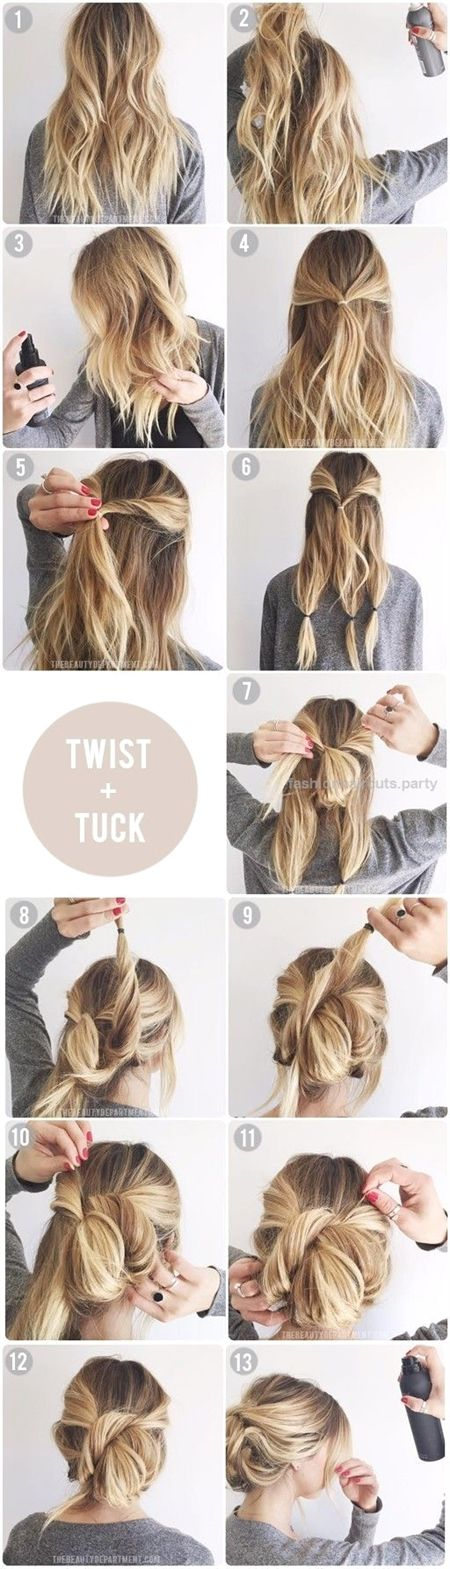 5 Gorgeous Messy Updos For Long Hair | Makeup Tutorials  Twist & Tuck Messy Updo | 5 Messy Updos for Long Hair, check it out at makeuptutorials.c…  …